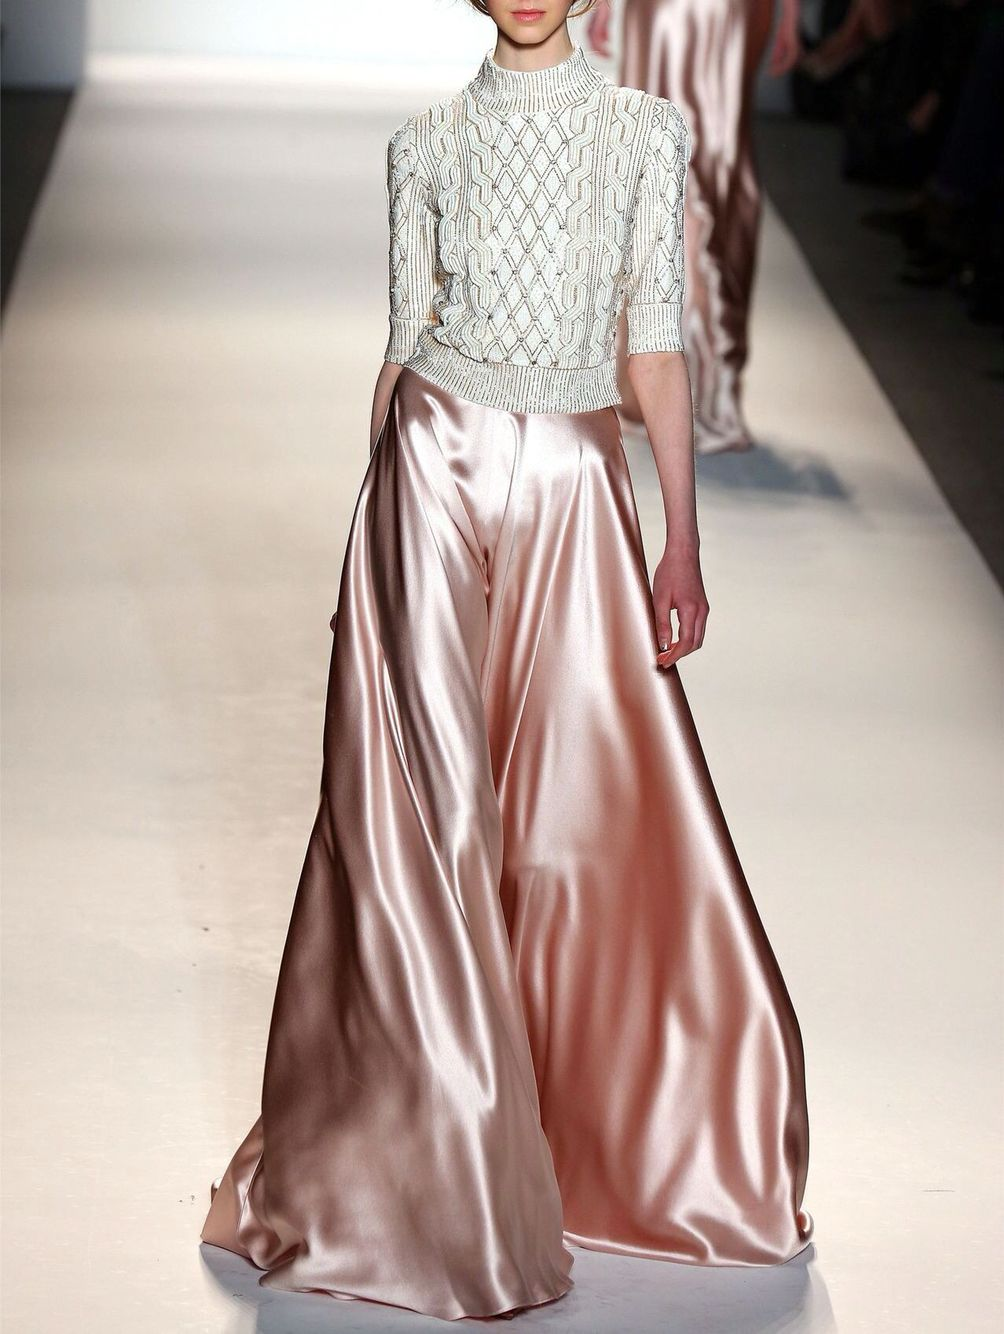 Jenny Packham Fall/Winter 2013